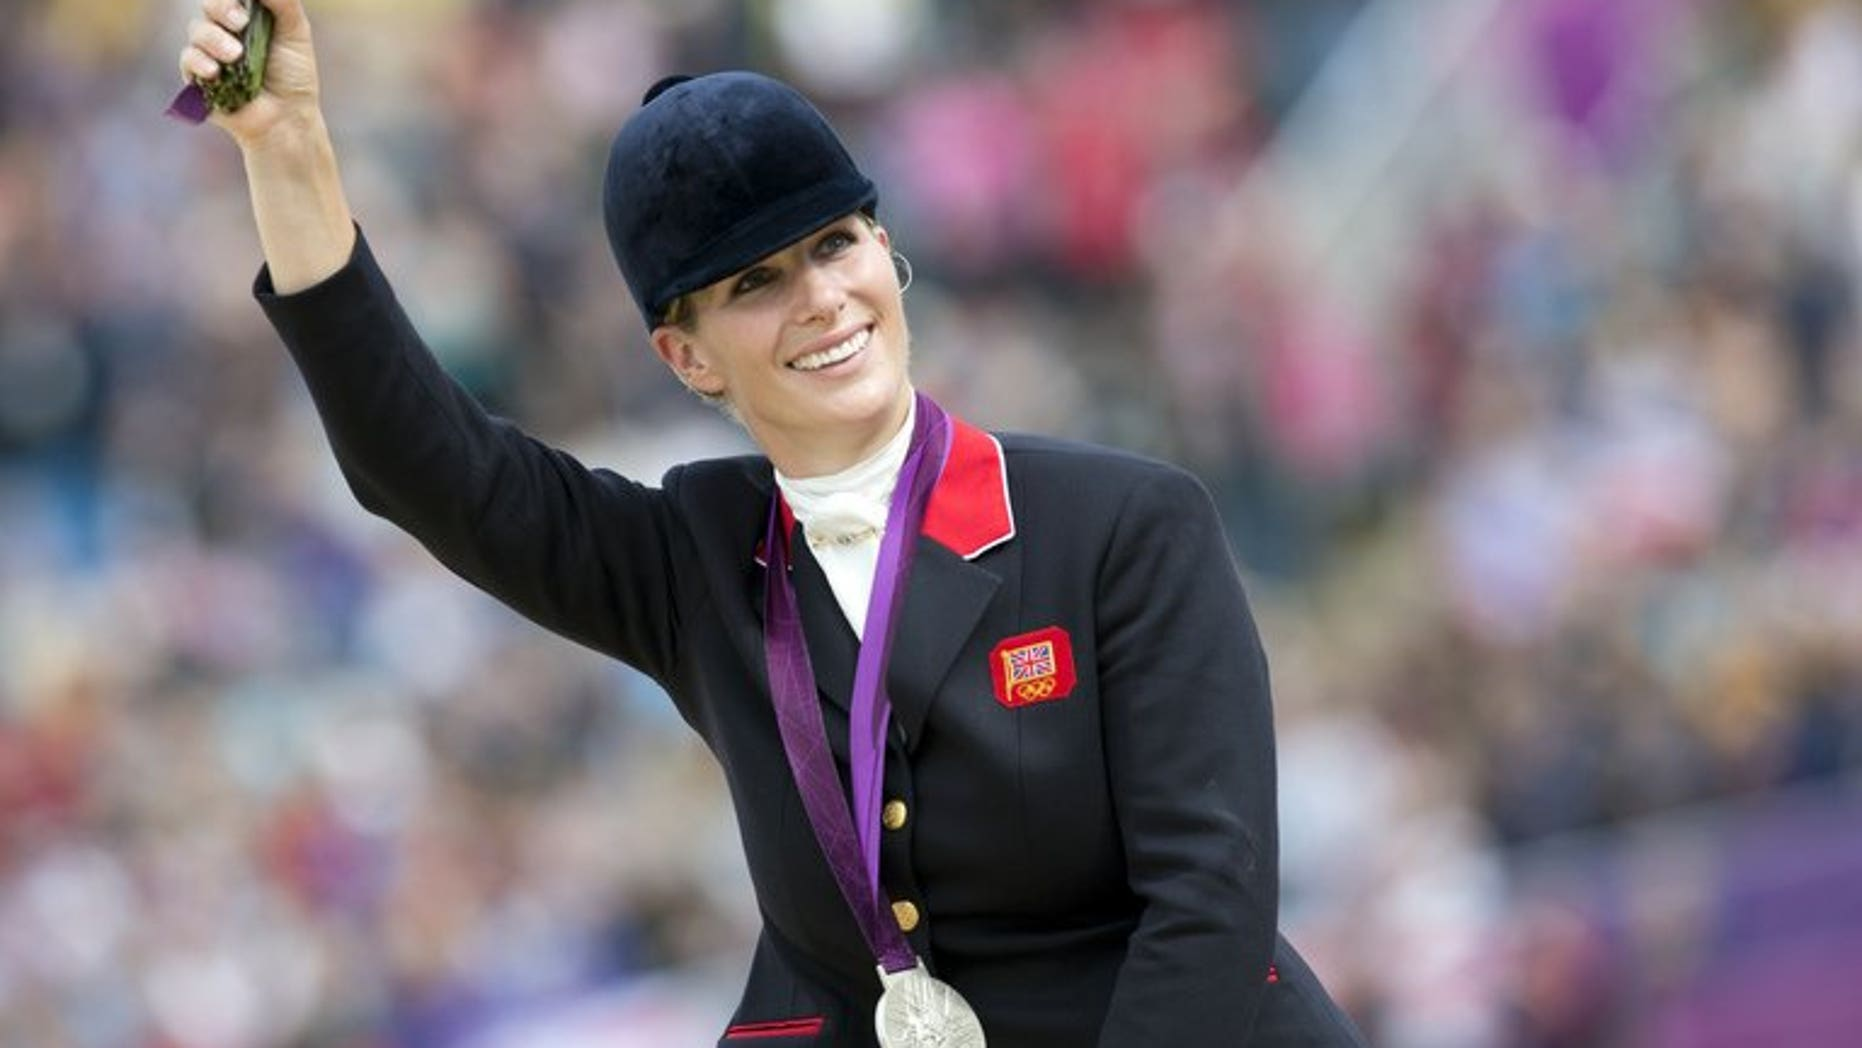 Queen Elizabeth II's eldest granddaughter Zara Tindall, previously known as Zara Phillips, waves to the crowd after winning the silver medal in the team equestrian event at the 2012 London Olympics in Greenwich Park, London on July 31, 2012. Tindall and her rugby player husband Mike Tindall are expecting their first child at the beginning of next year, Buckingham Palace announced on Monday.